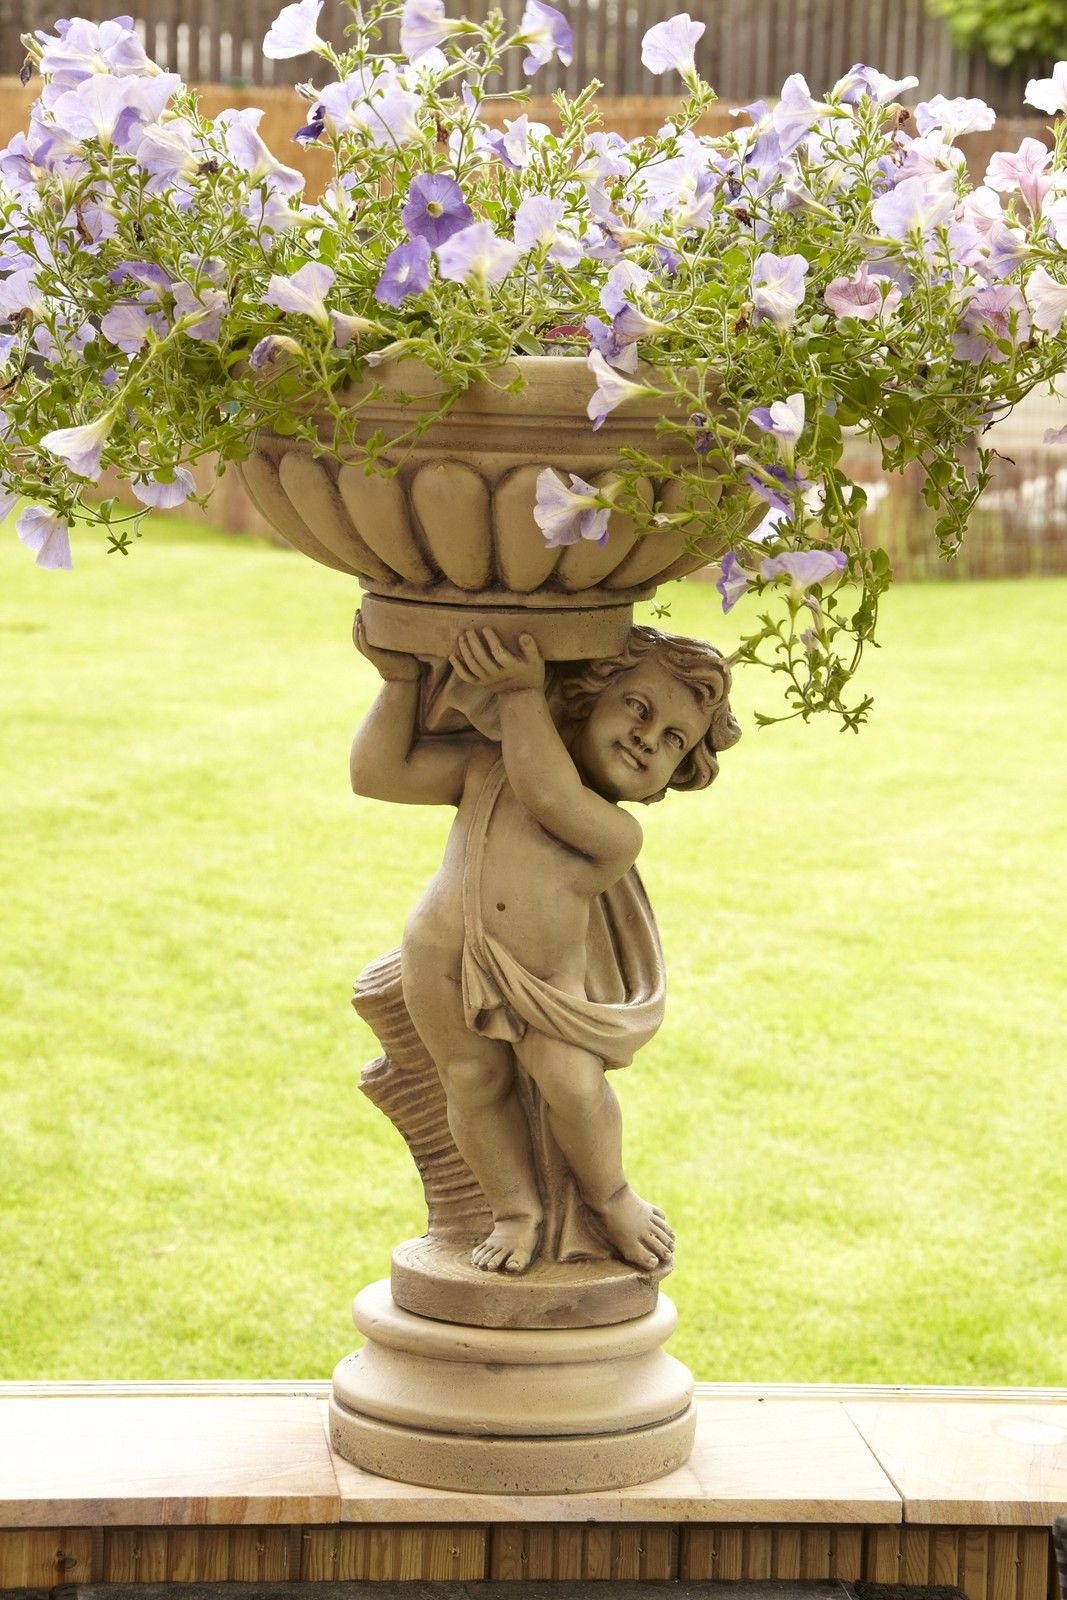 Head Planter Pots For Sale Large Stone Cherub Planter Garden Statue Bird Bath Ebay